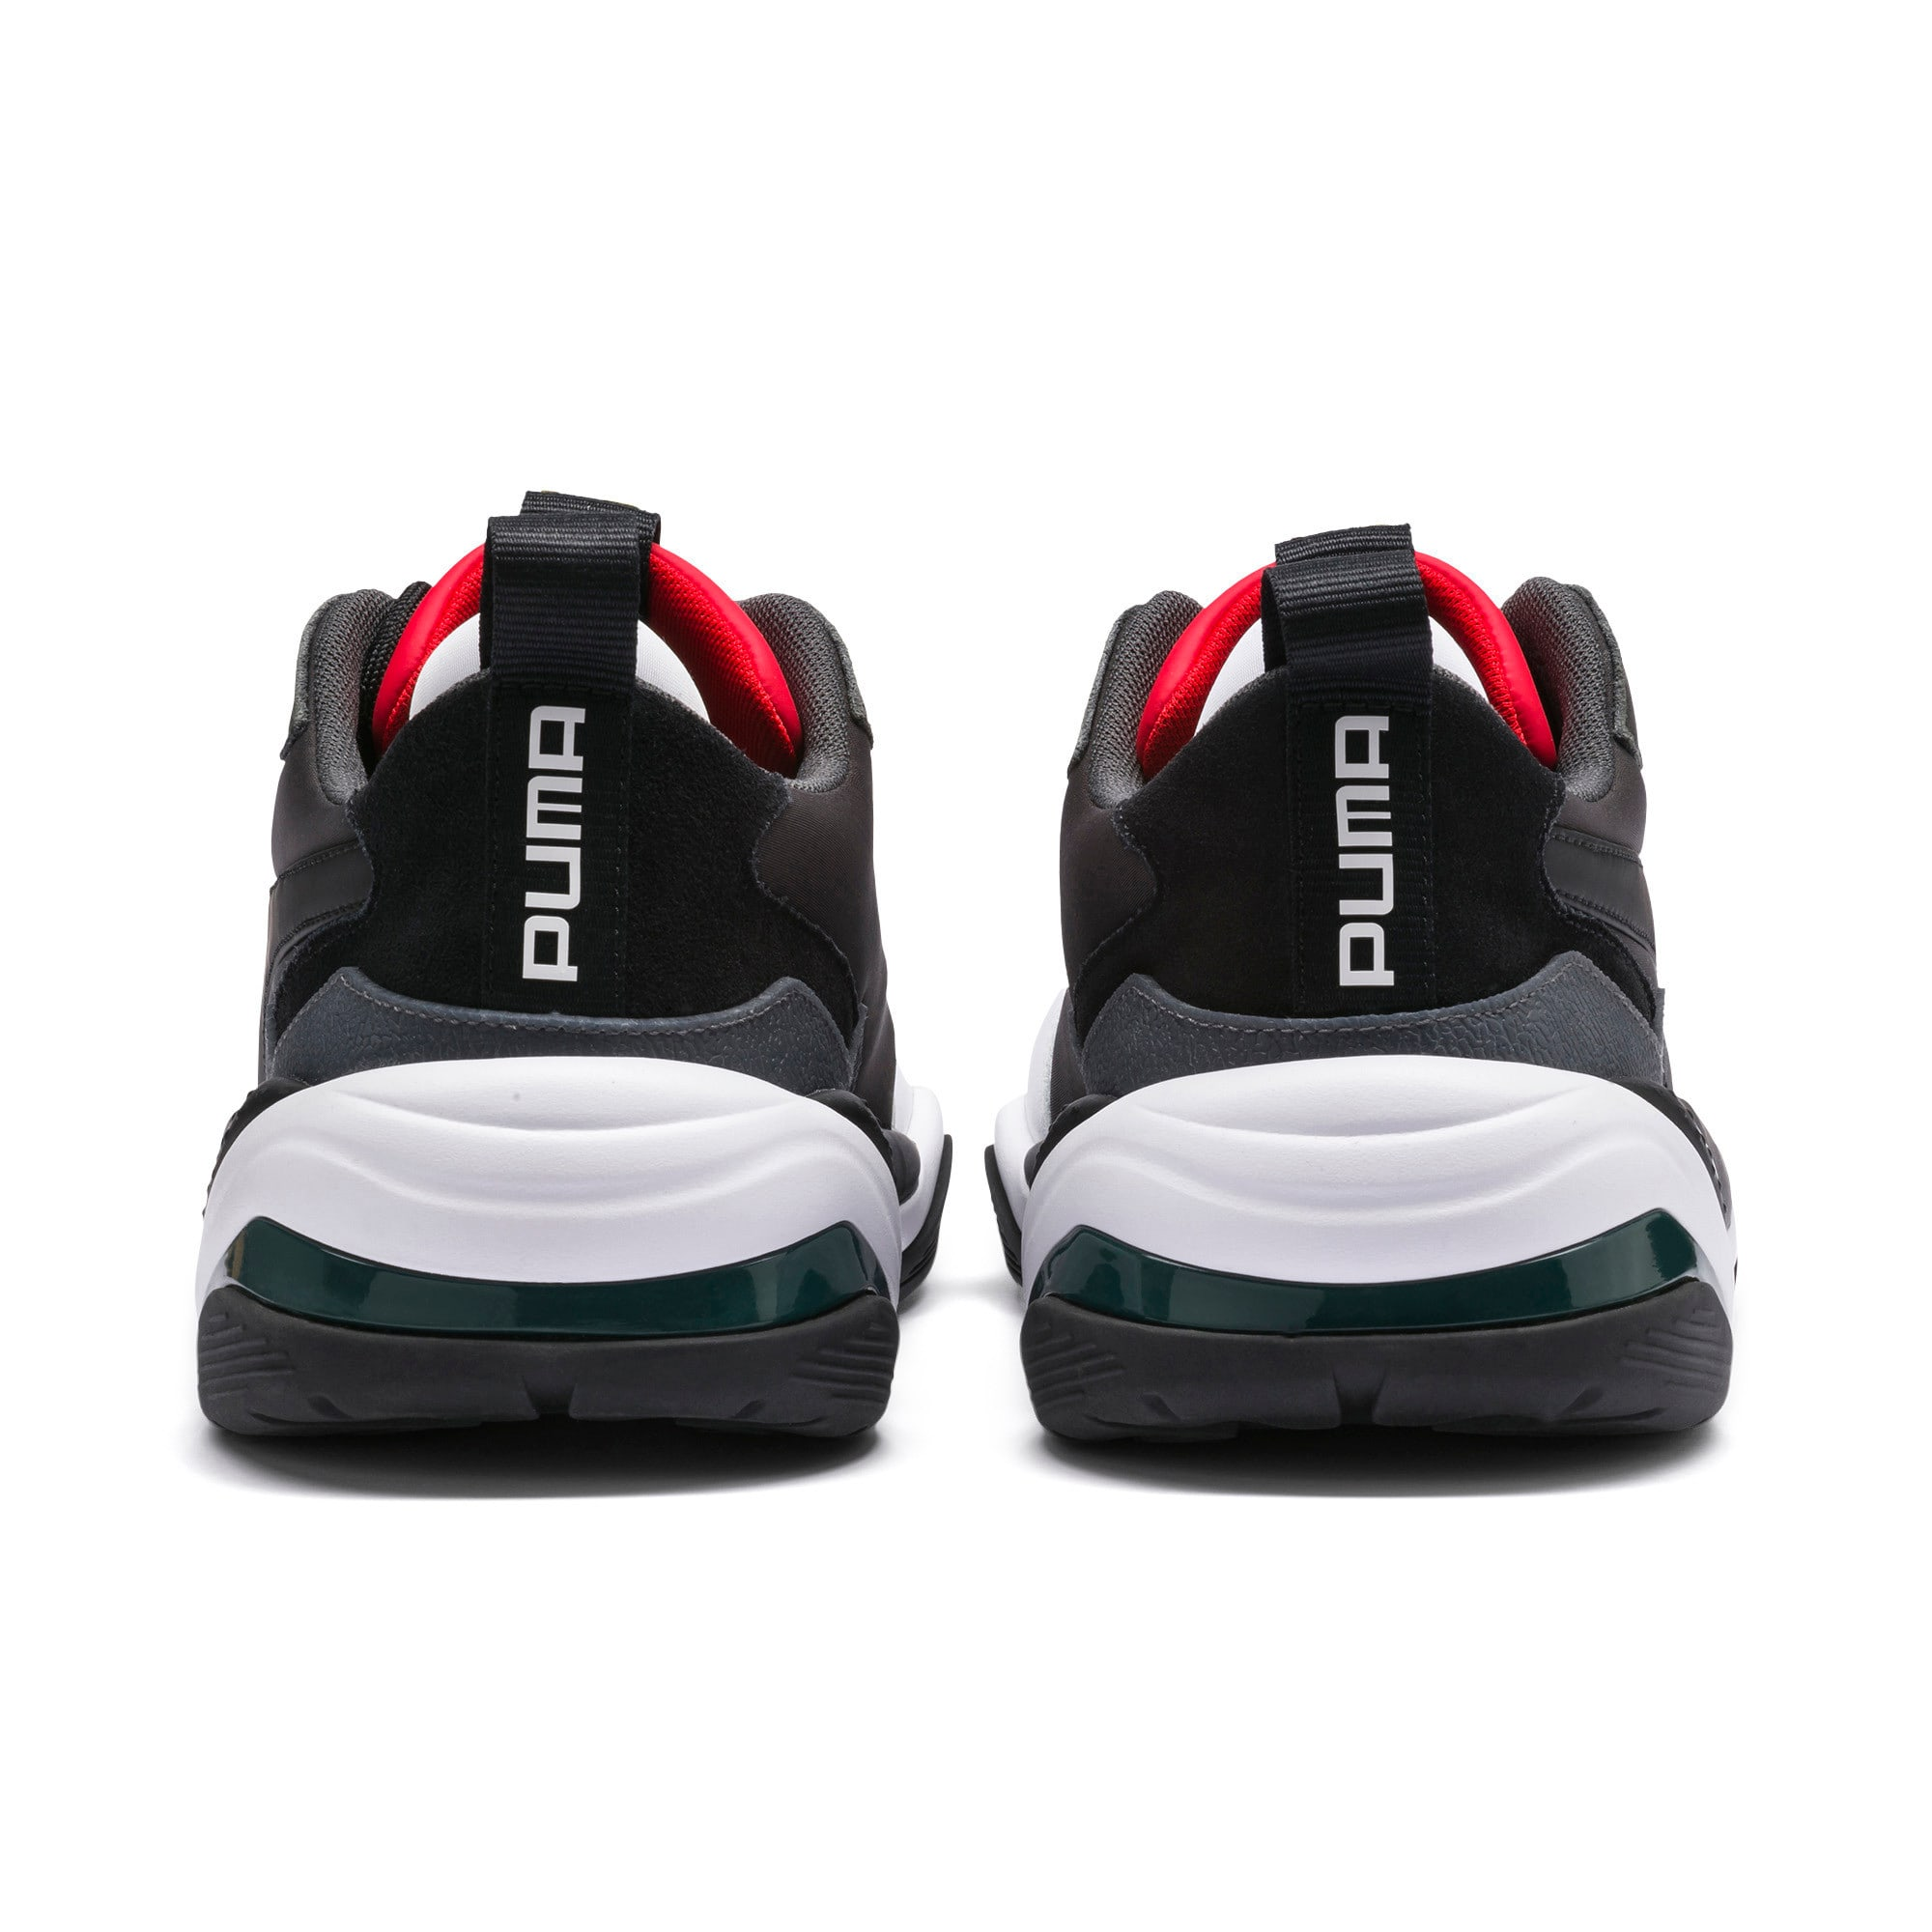 Thumbnail 3 of Thunder Spectra Sneakers, Puma Black-High Risk Red, medium